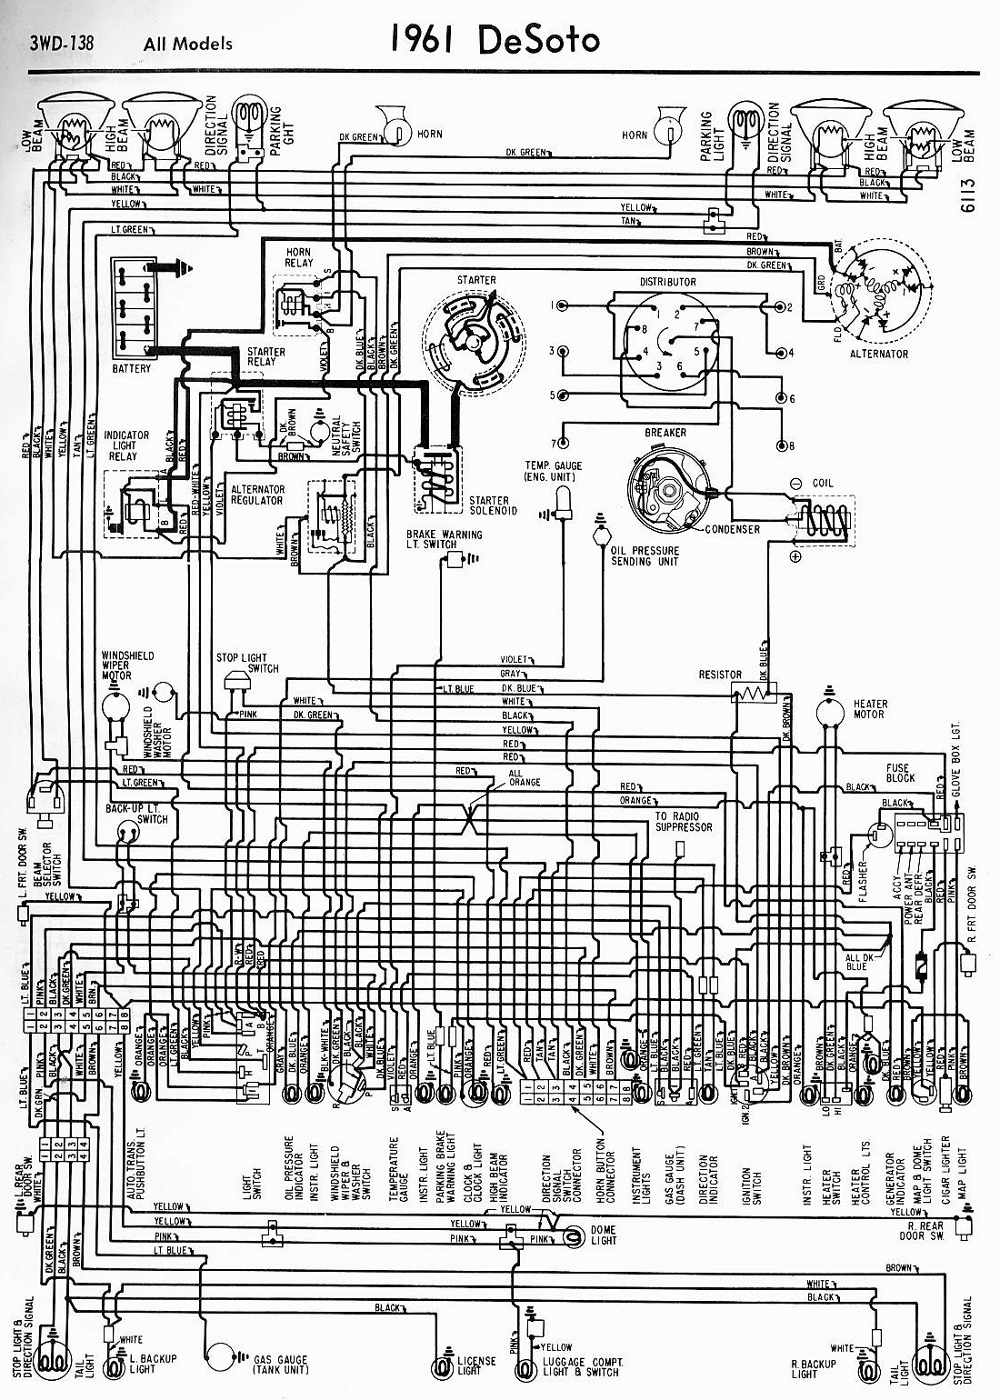 1952 plymouth wiring diagram schematic schematics wiring diagrams u2022 rh seniorlivinguniversity co 1952 ford customline wiring diagram 1952 ford truck wiring diagram